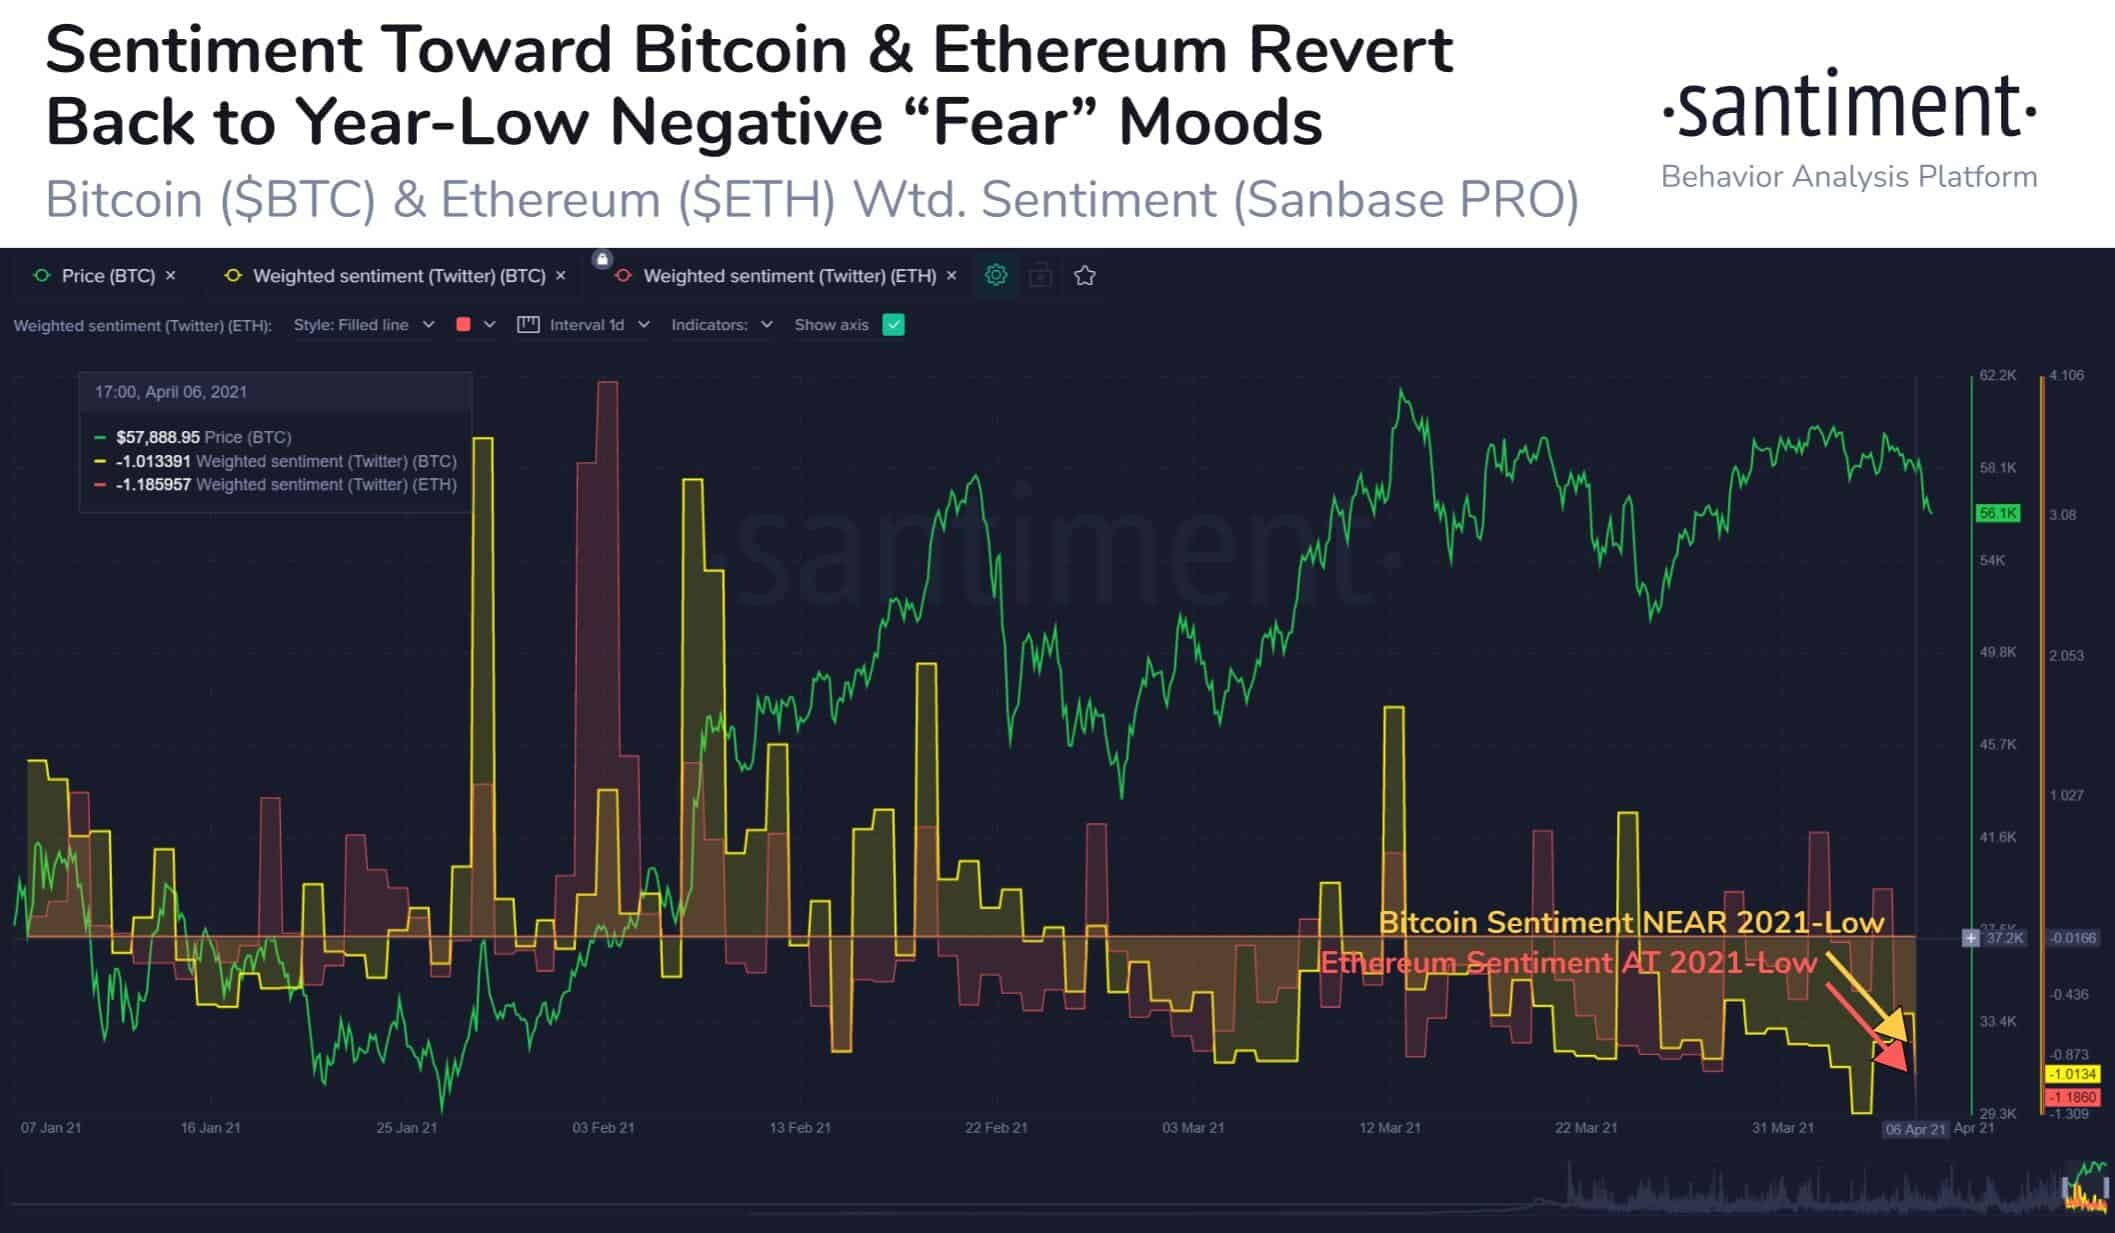 General Sentiment Towards Bitcoin and Ethereum. Source: Santiment